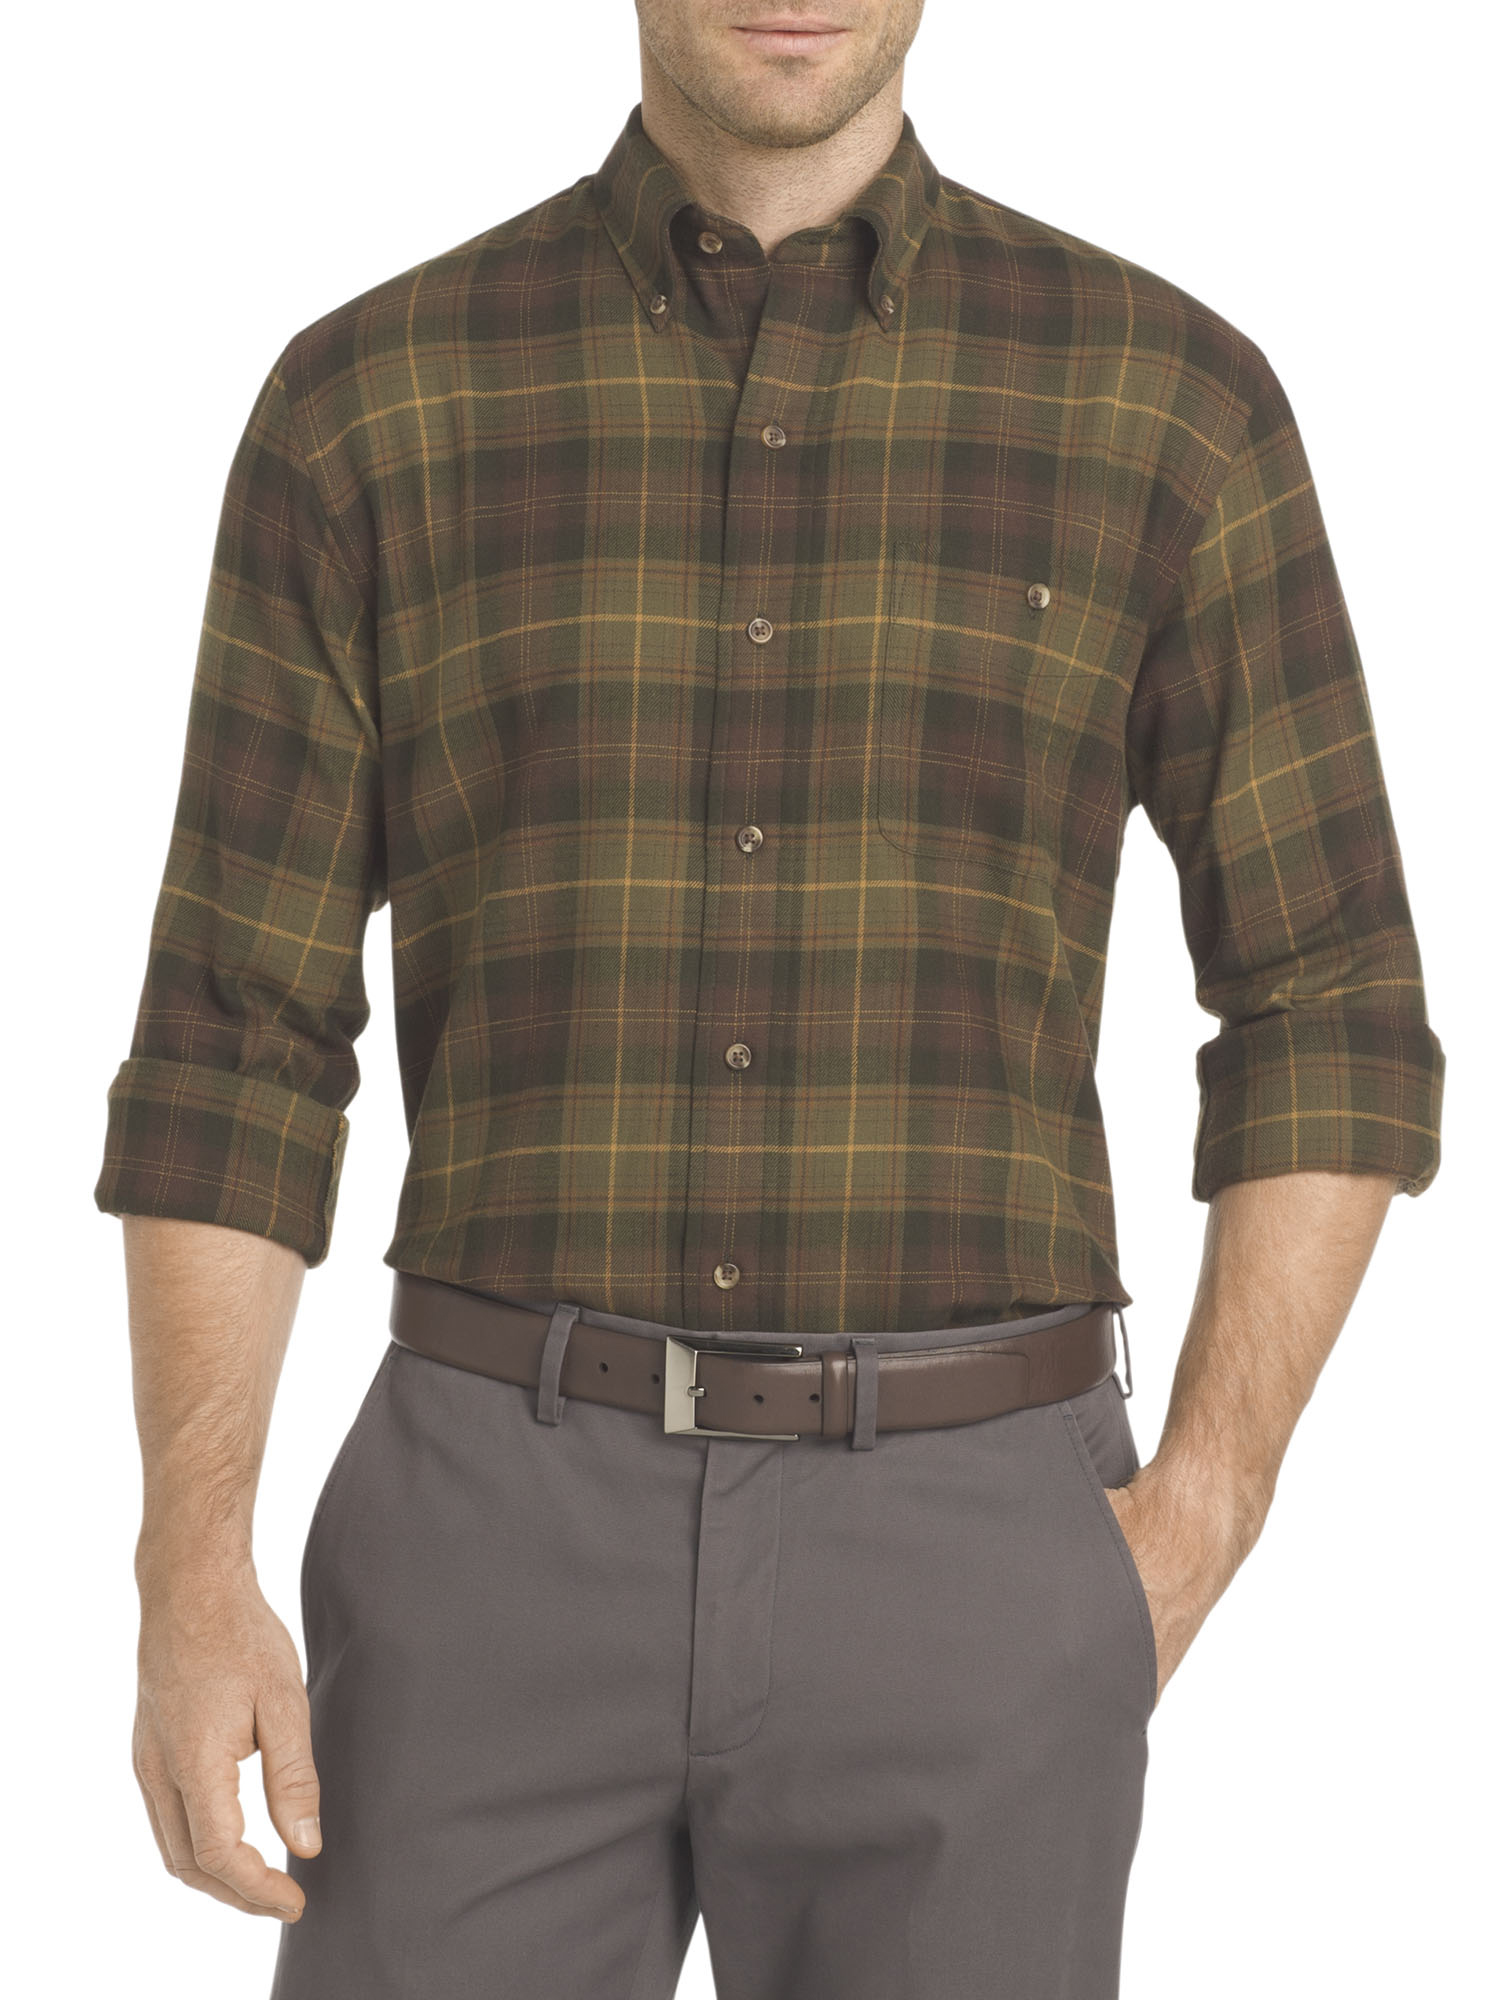 Solid Arrow Mens Heritage Regular-Fit Twill Button Down Shirt Rosin, Large